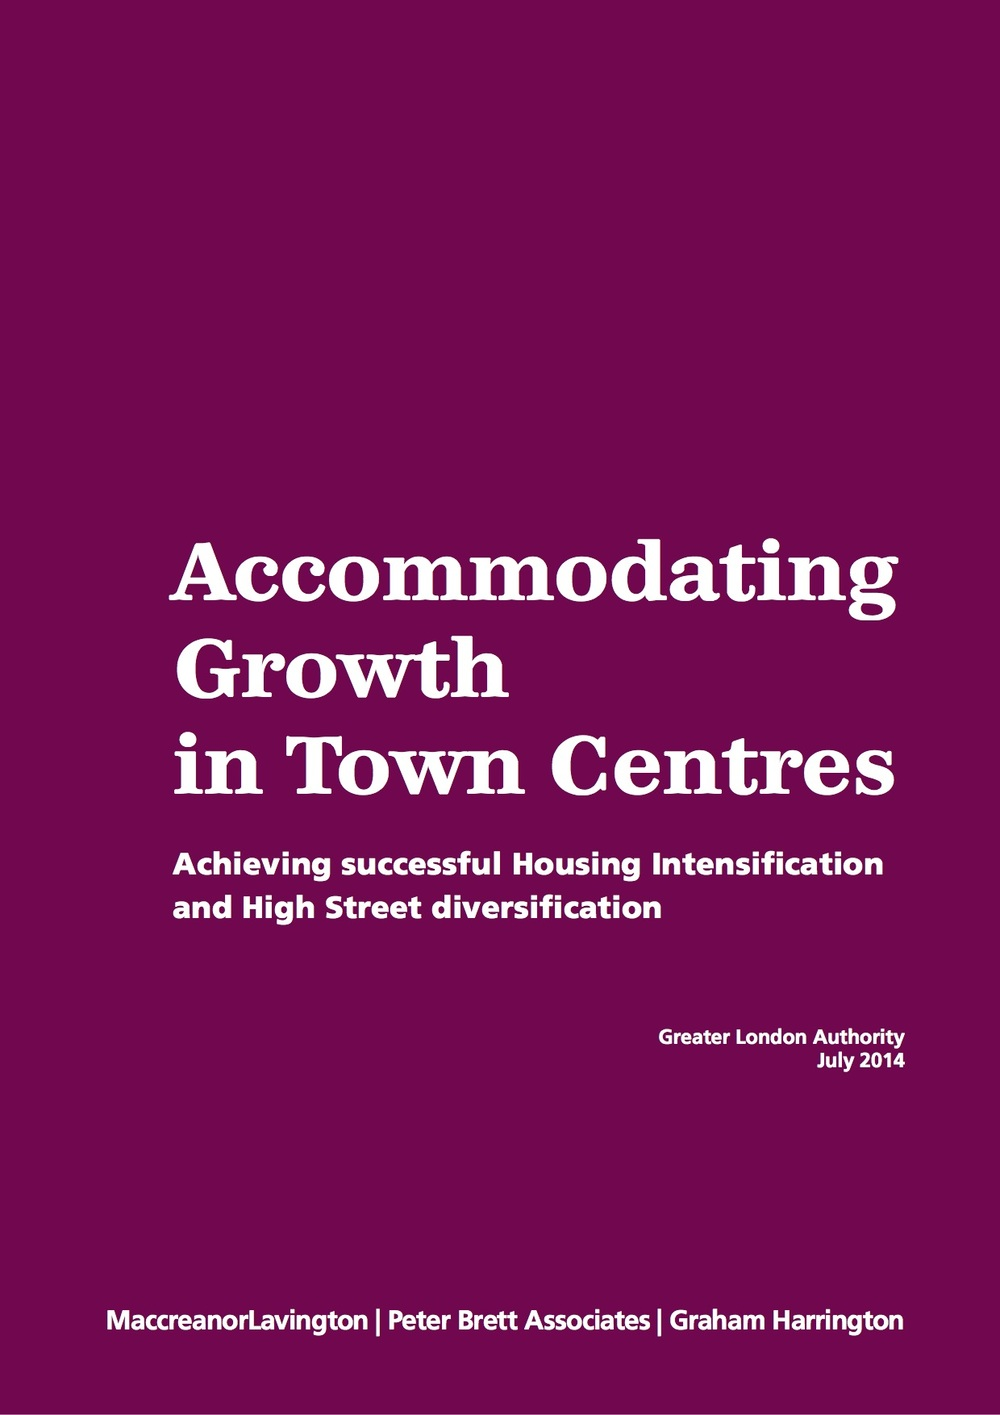 accomodating_growth_in_town_centres.jpg